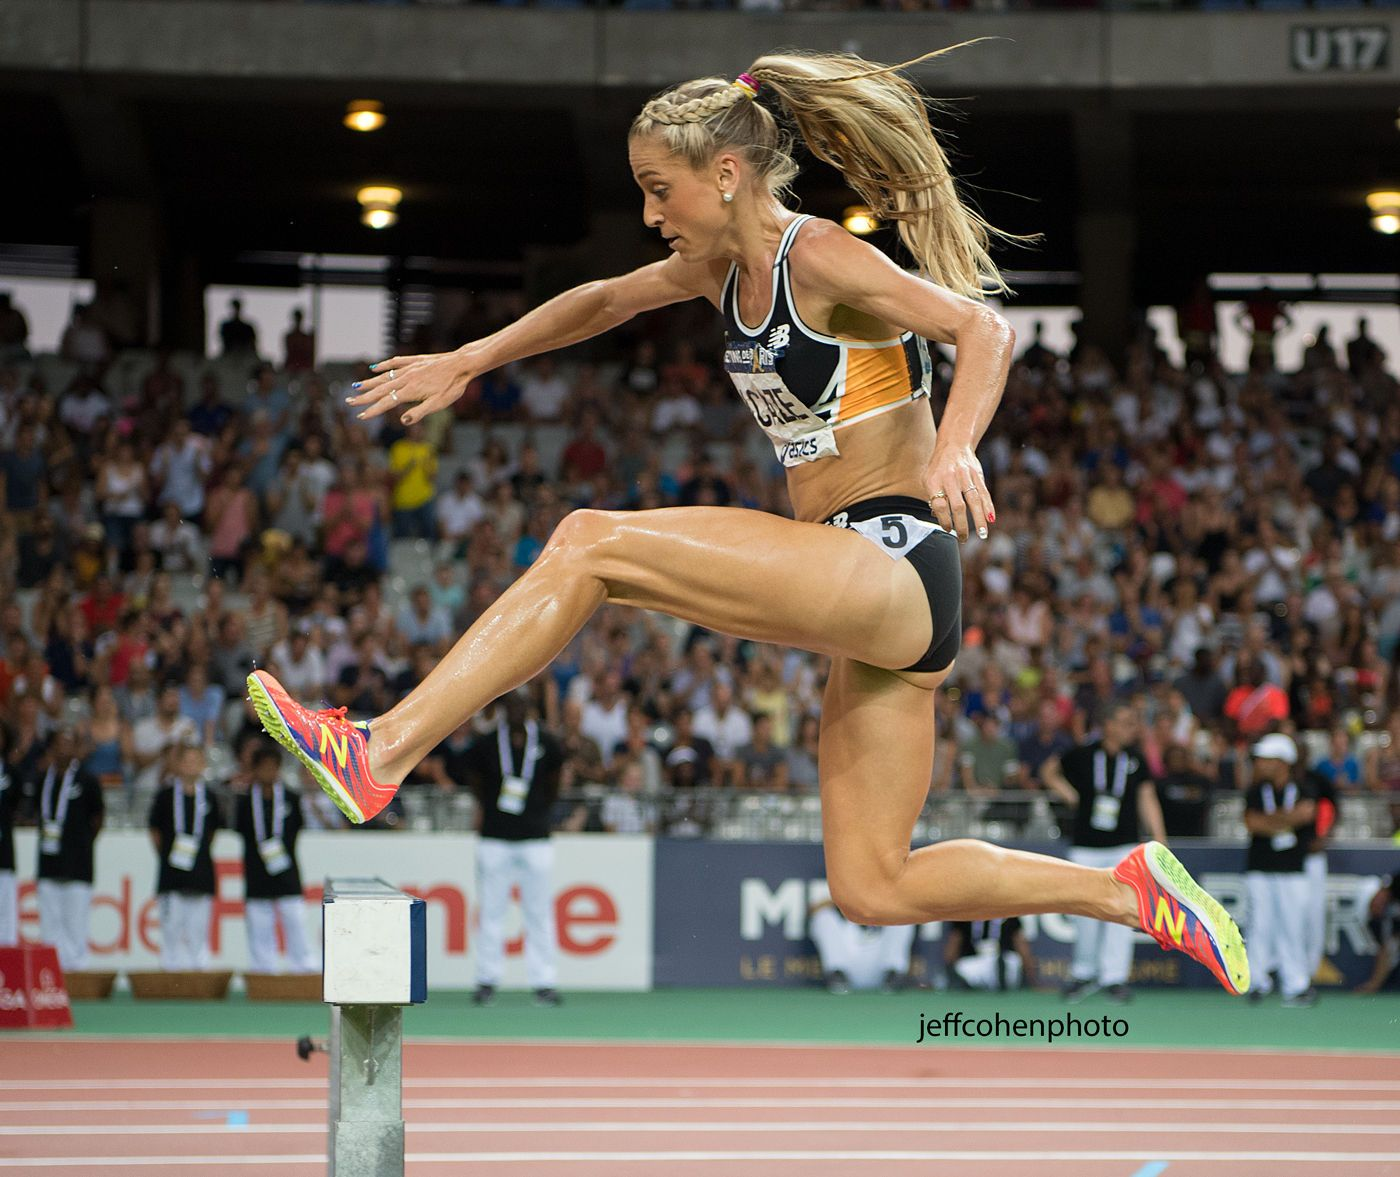 1r2016_meeting_de_paris_lacaze_steeple_5_jeff_cohen_photo_1070_web.jpg